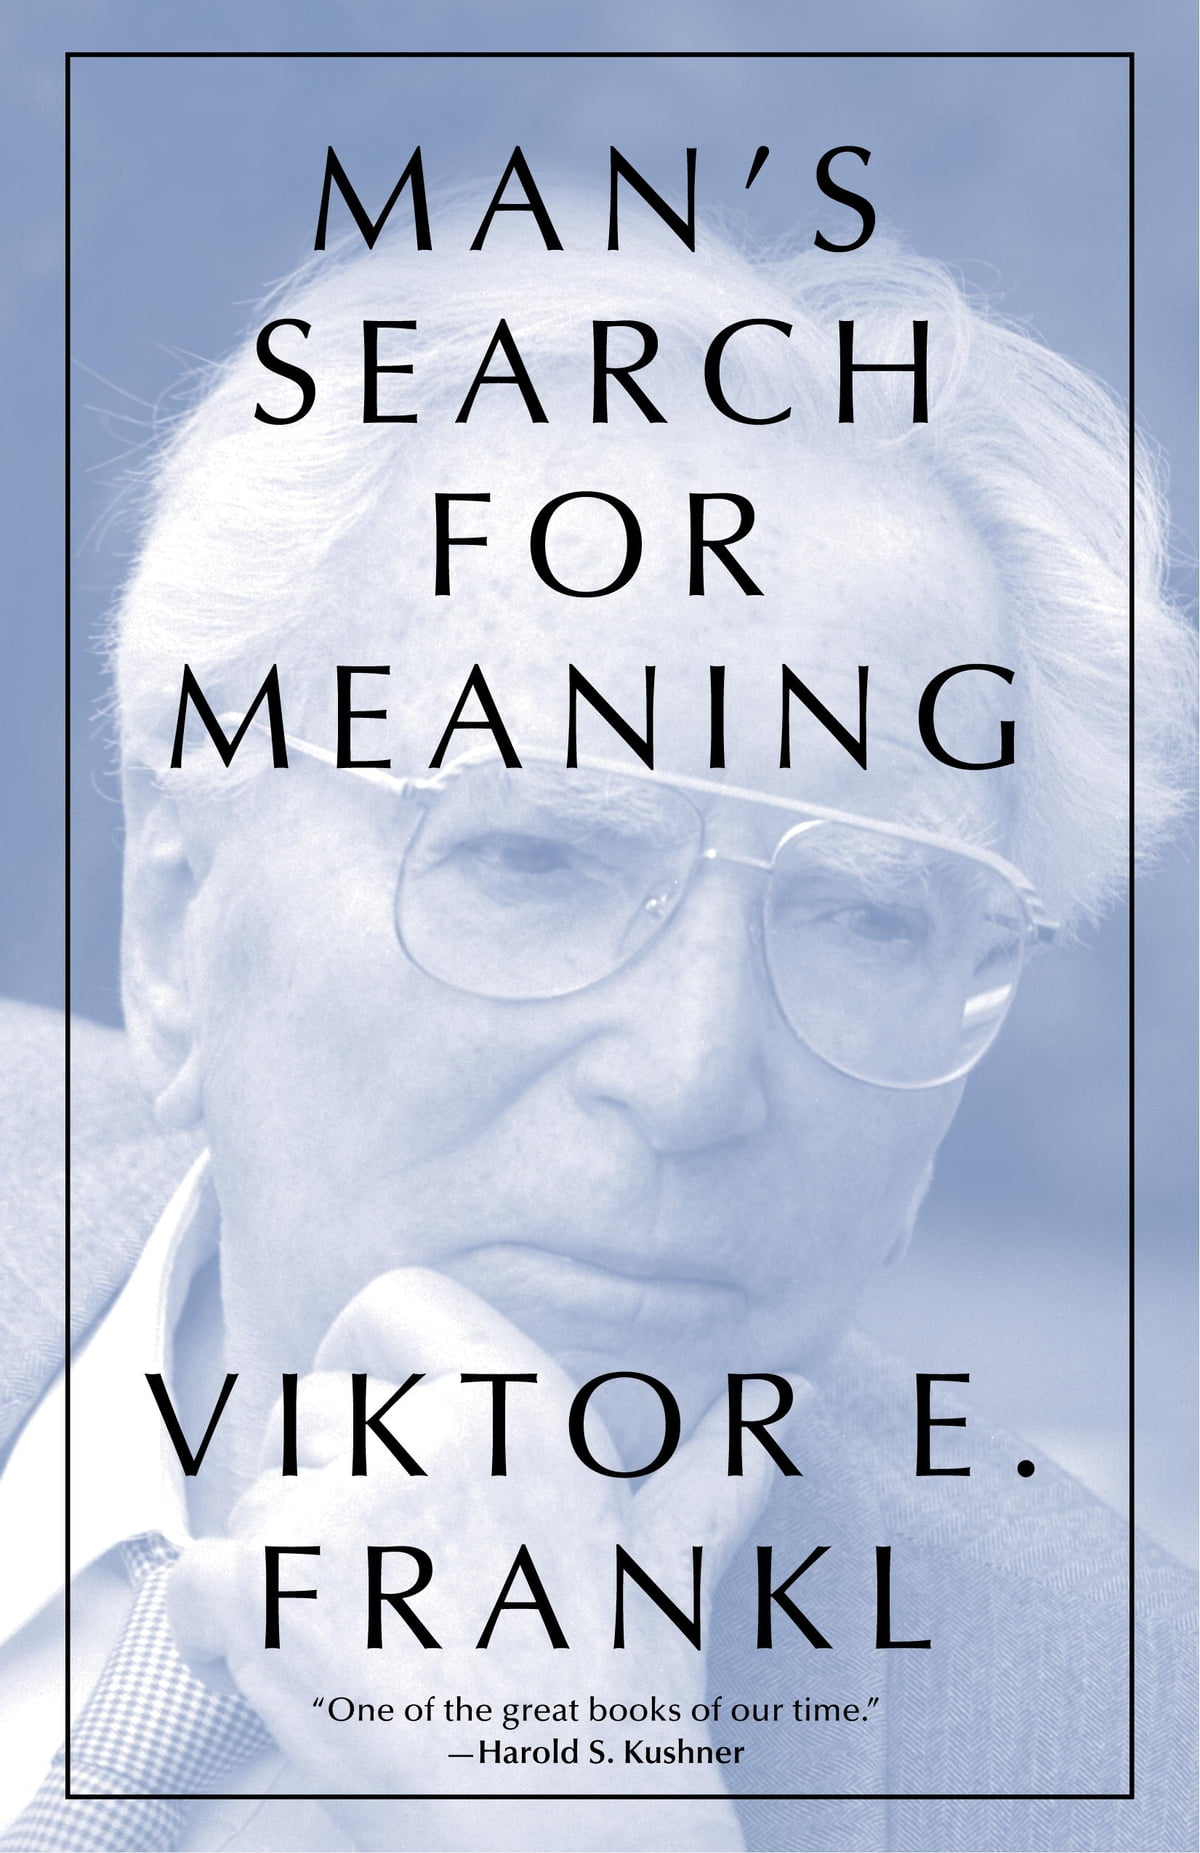 "mans search for meaning thesis statement Husain rusty nights without essay on mans search for meaning by viktor for ""a man's search thesis statement for metaphors by sylvia for meaning"" by."